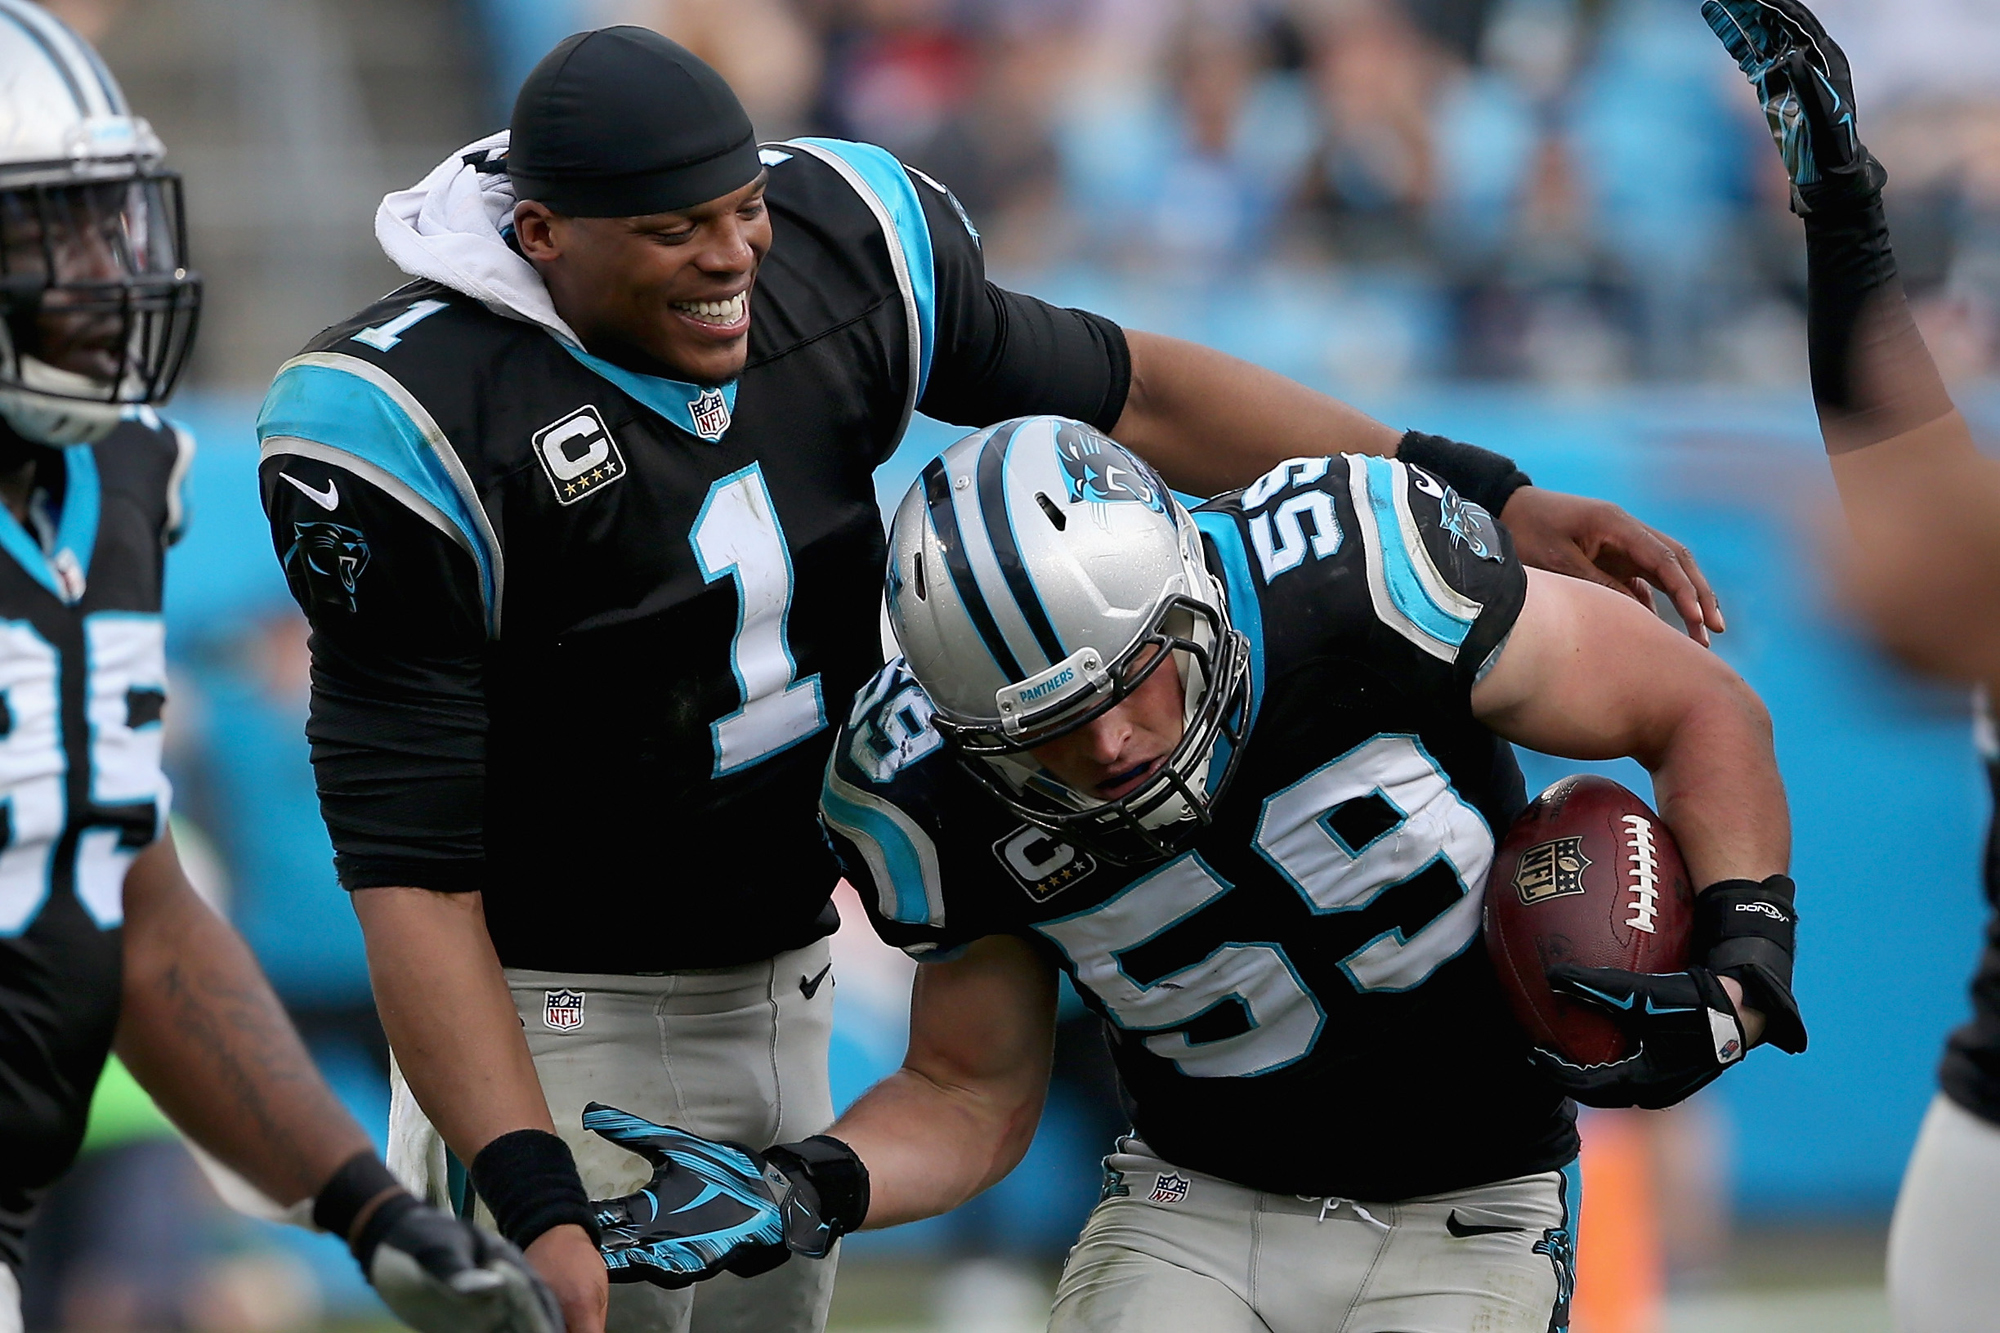 Cam Newton #1 congratulates teammate Luke Kuechly #59 of the Carolina Panthers after Kuechly made an interception in the 3rd quarter during their game against the Atlanta Falcons at Bank of America Stadium on December 13, 2015 in Charlotte, North Carolina.